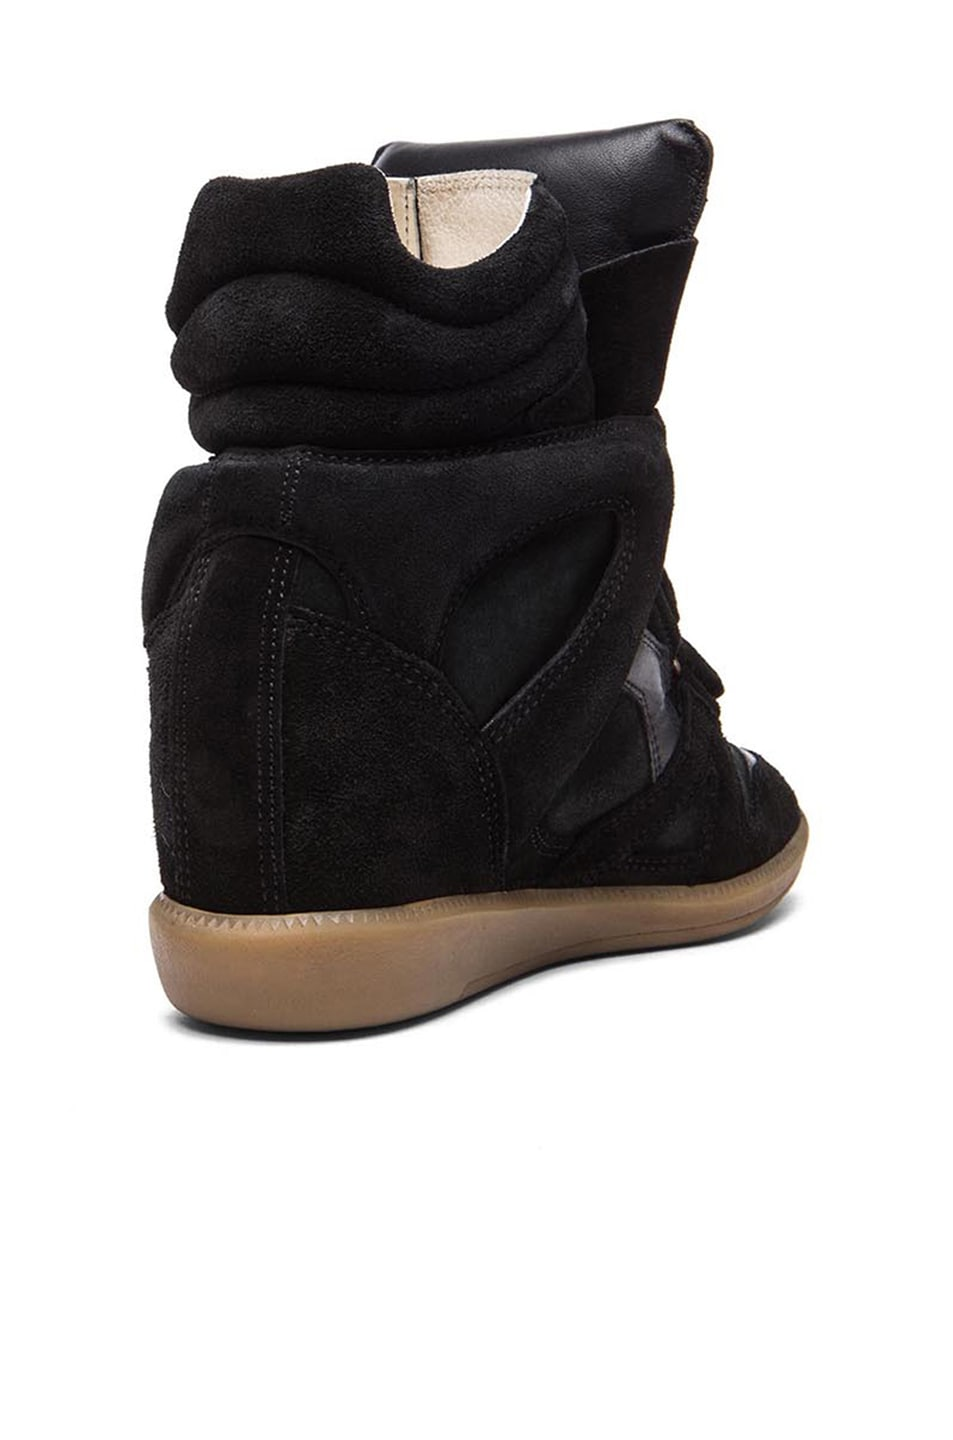 Image 3 of Isabel Marant Bekett Calfskin Velvet Leather Sneakers in Faded Black